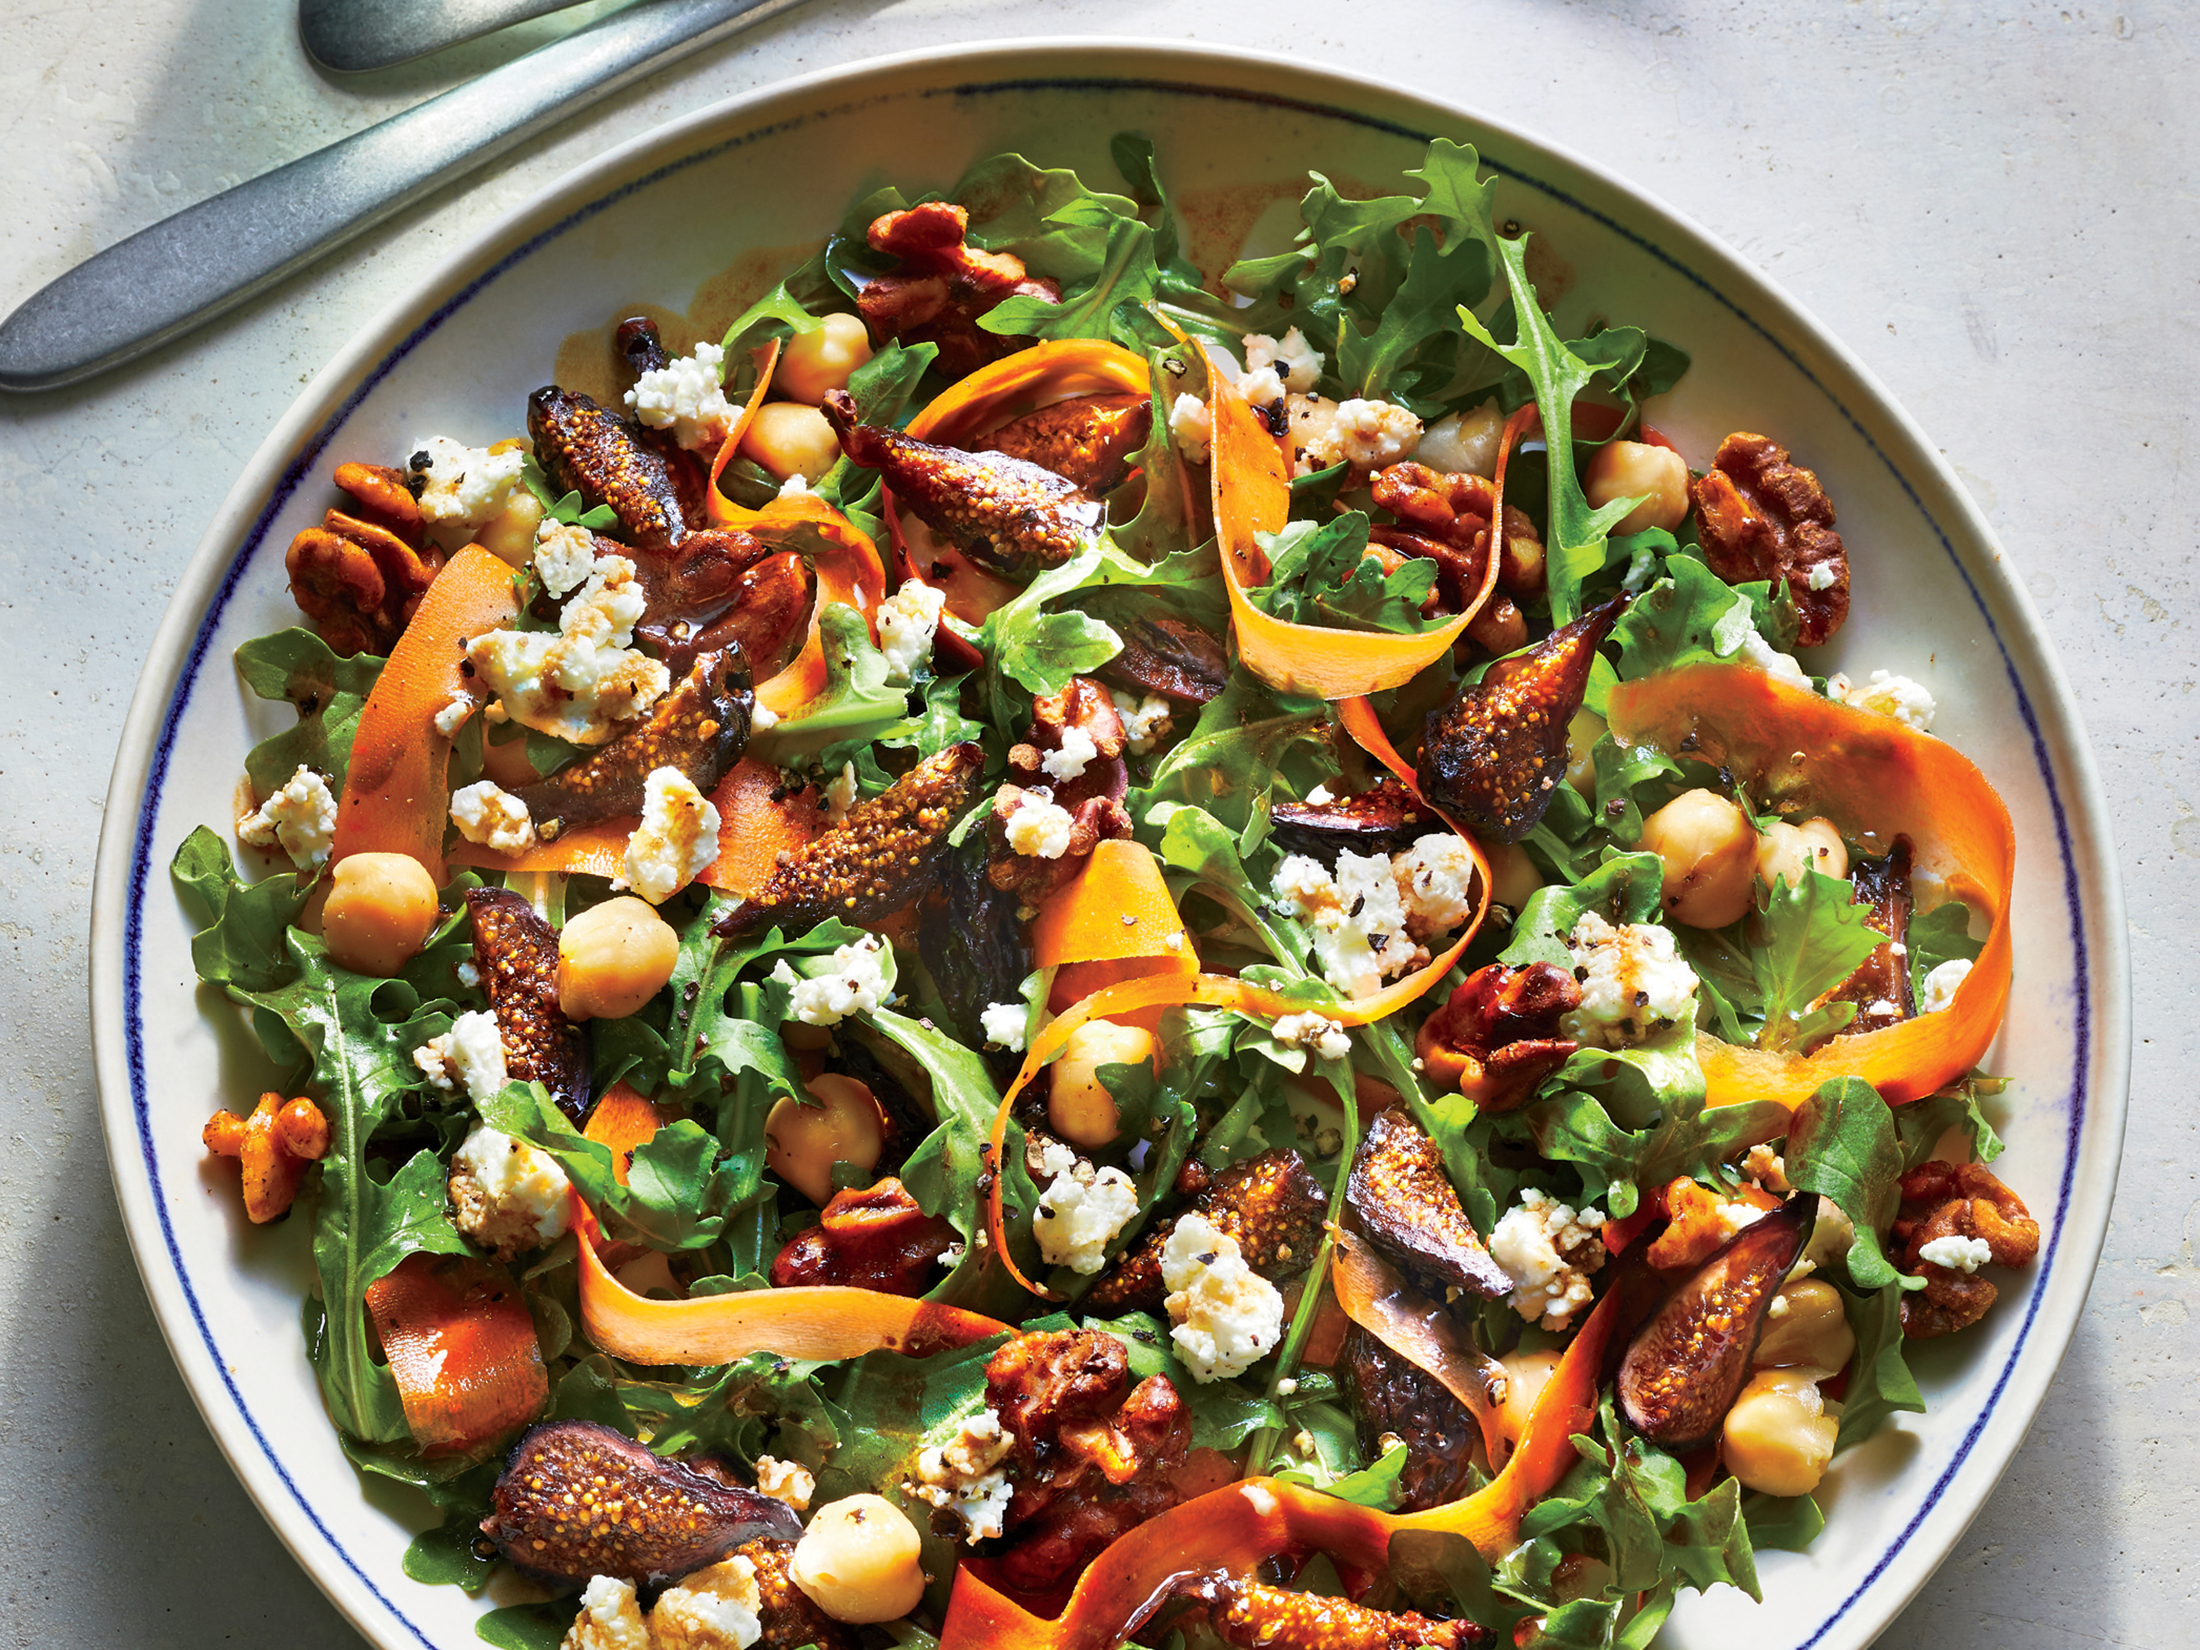 Fig and Arugula Salad With Walnuts and Goat Cheese